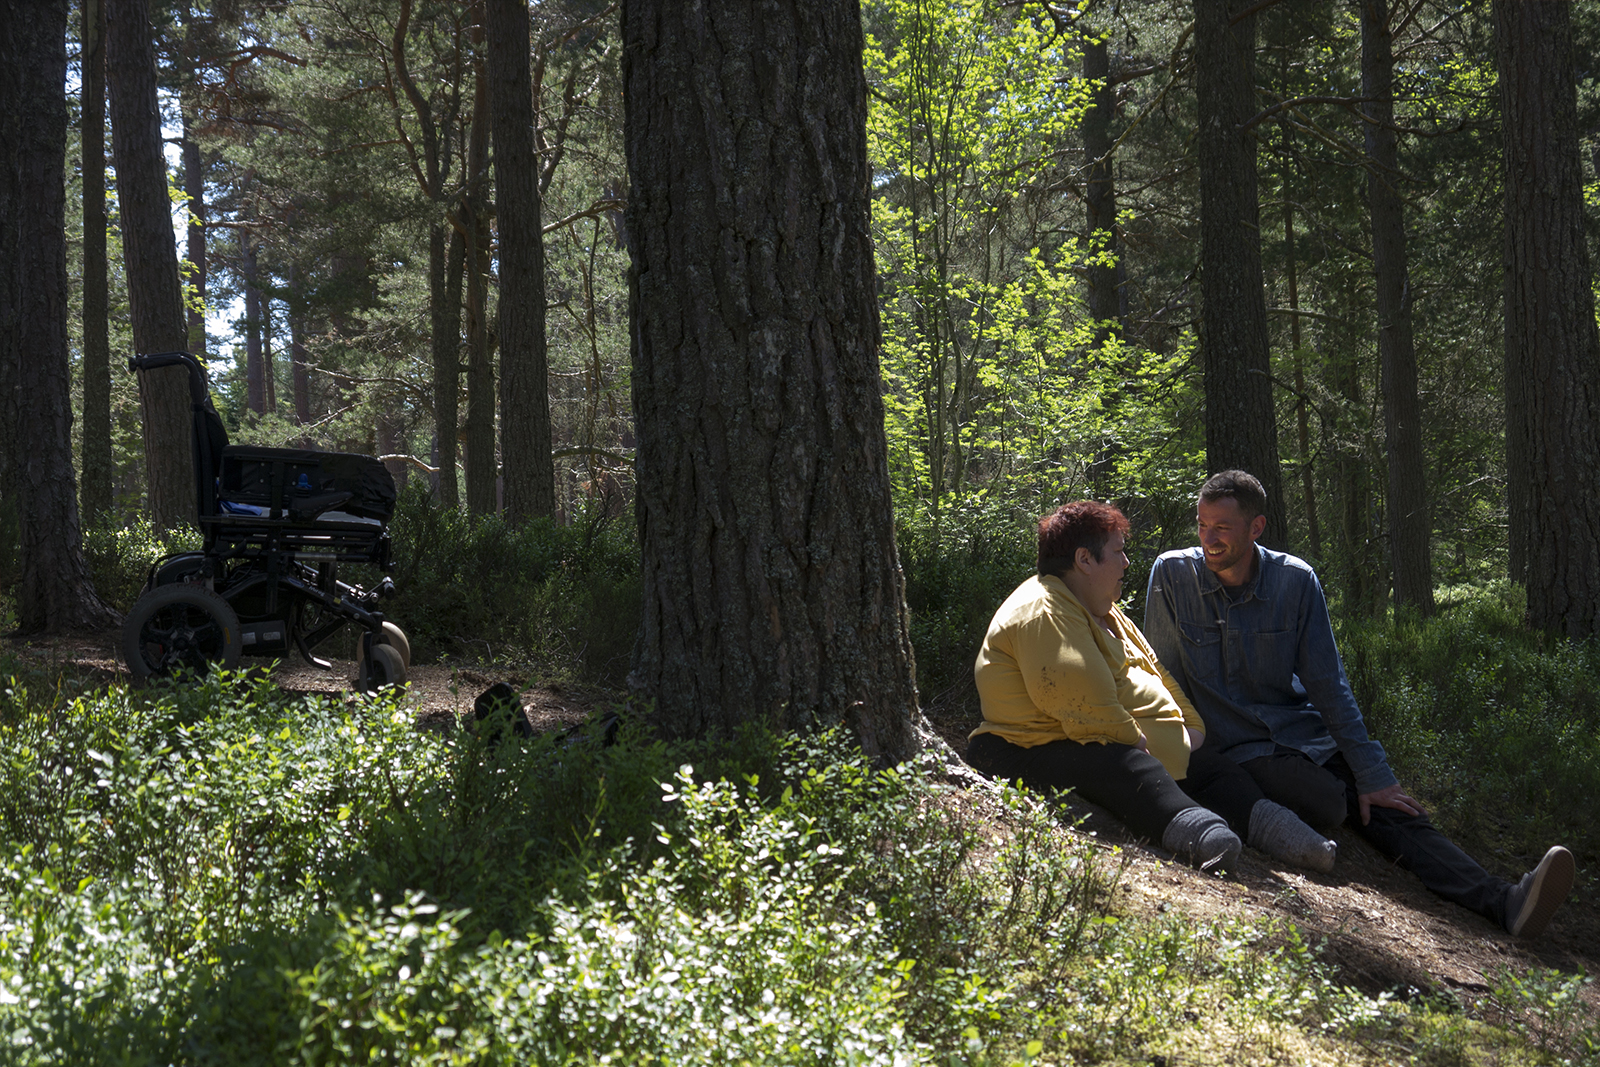 Robbie Synge and Julie Cleves sitting down in a forest, smiling at one another. A wheelchair is visible in the left hand side of the frame.